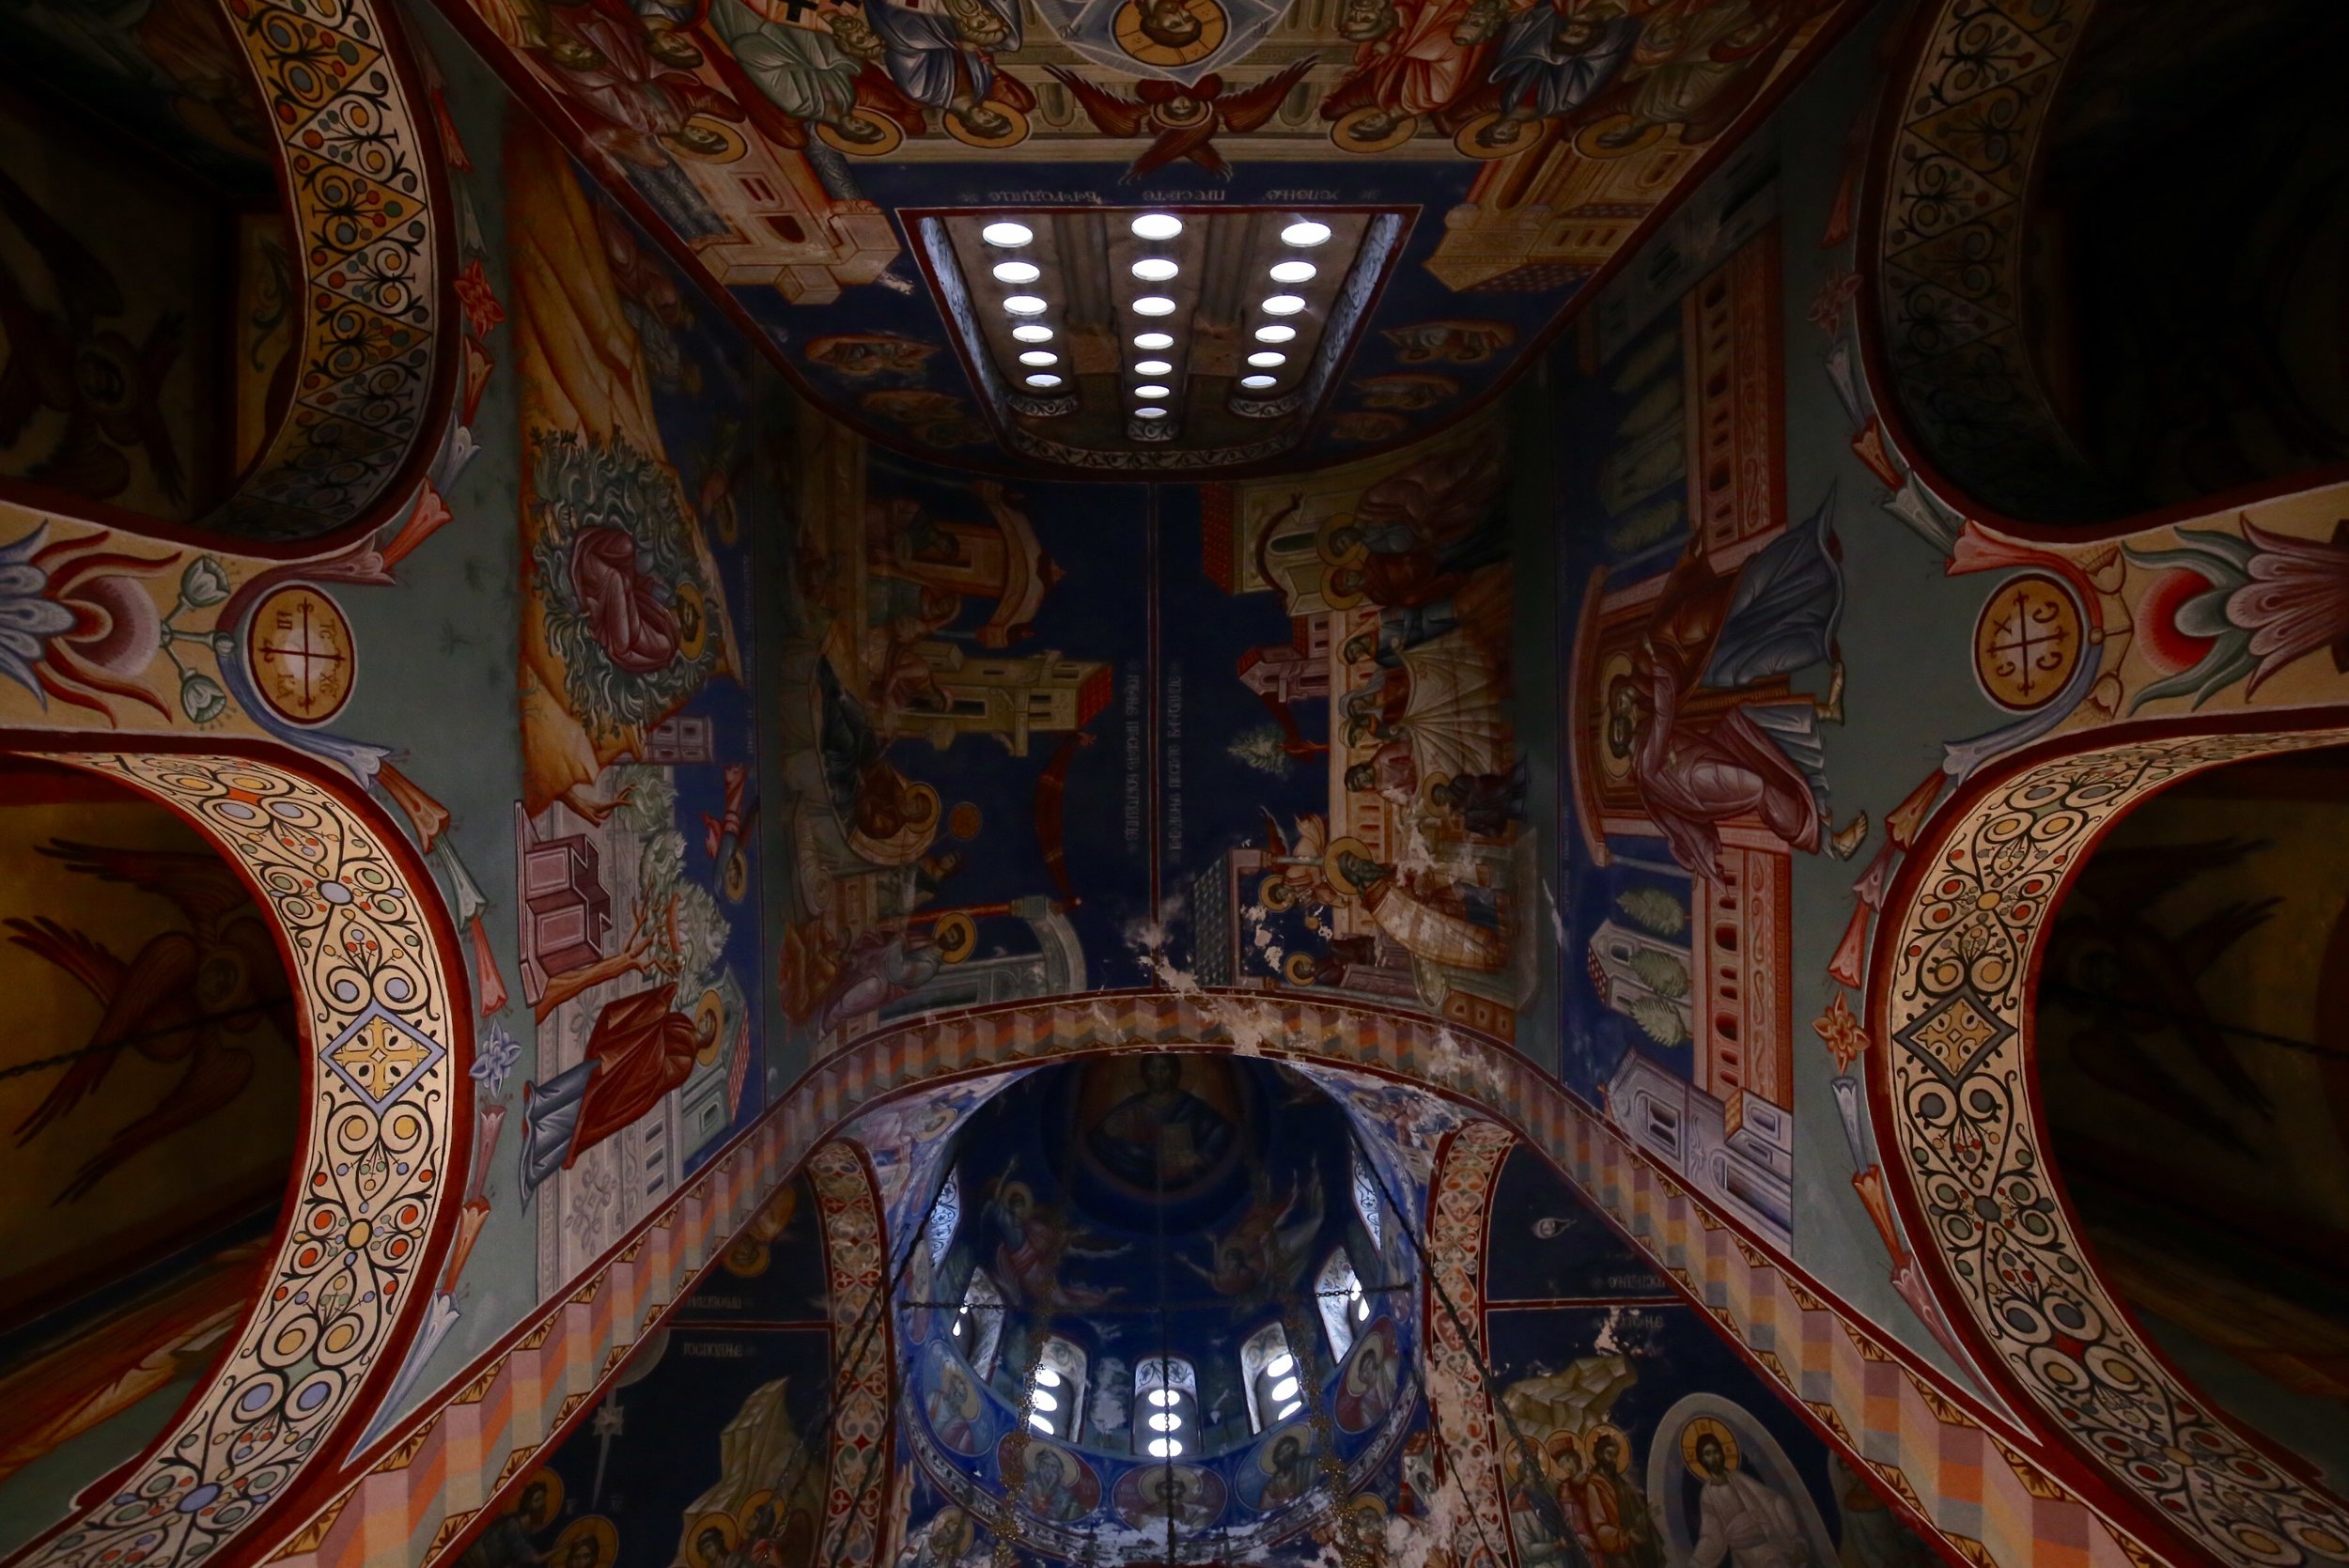 The interior of Hercegovačka Gračanica Church - painted ceilings and saints.